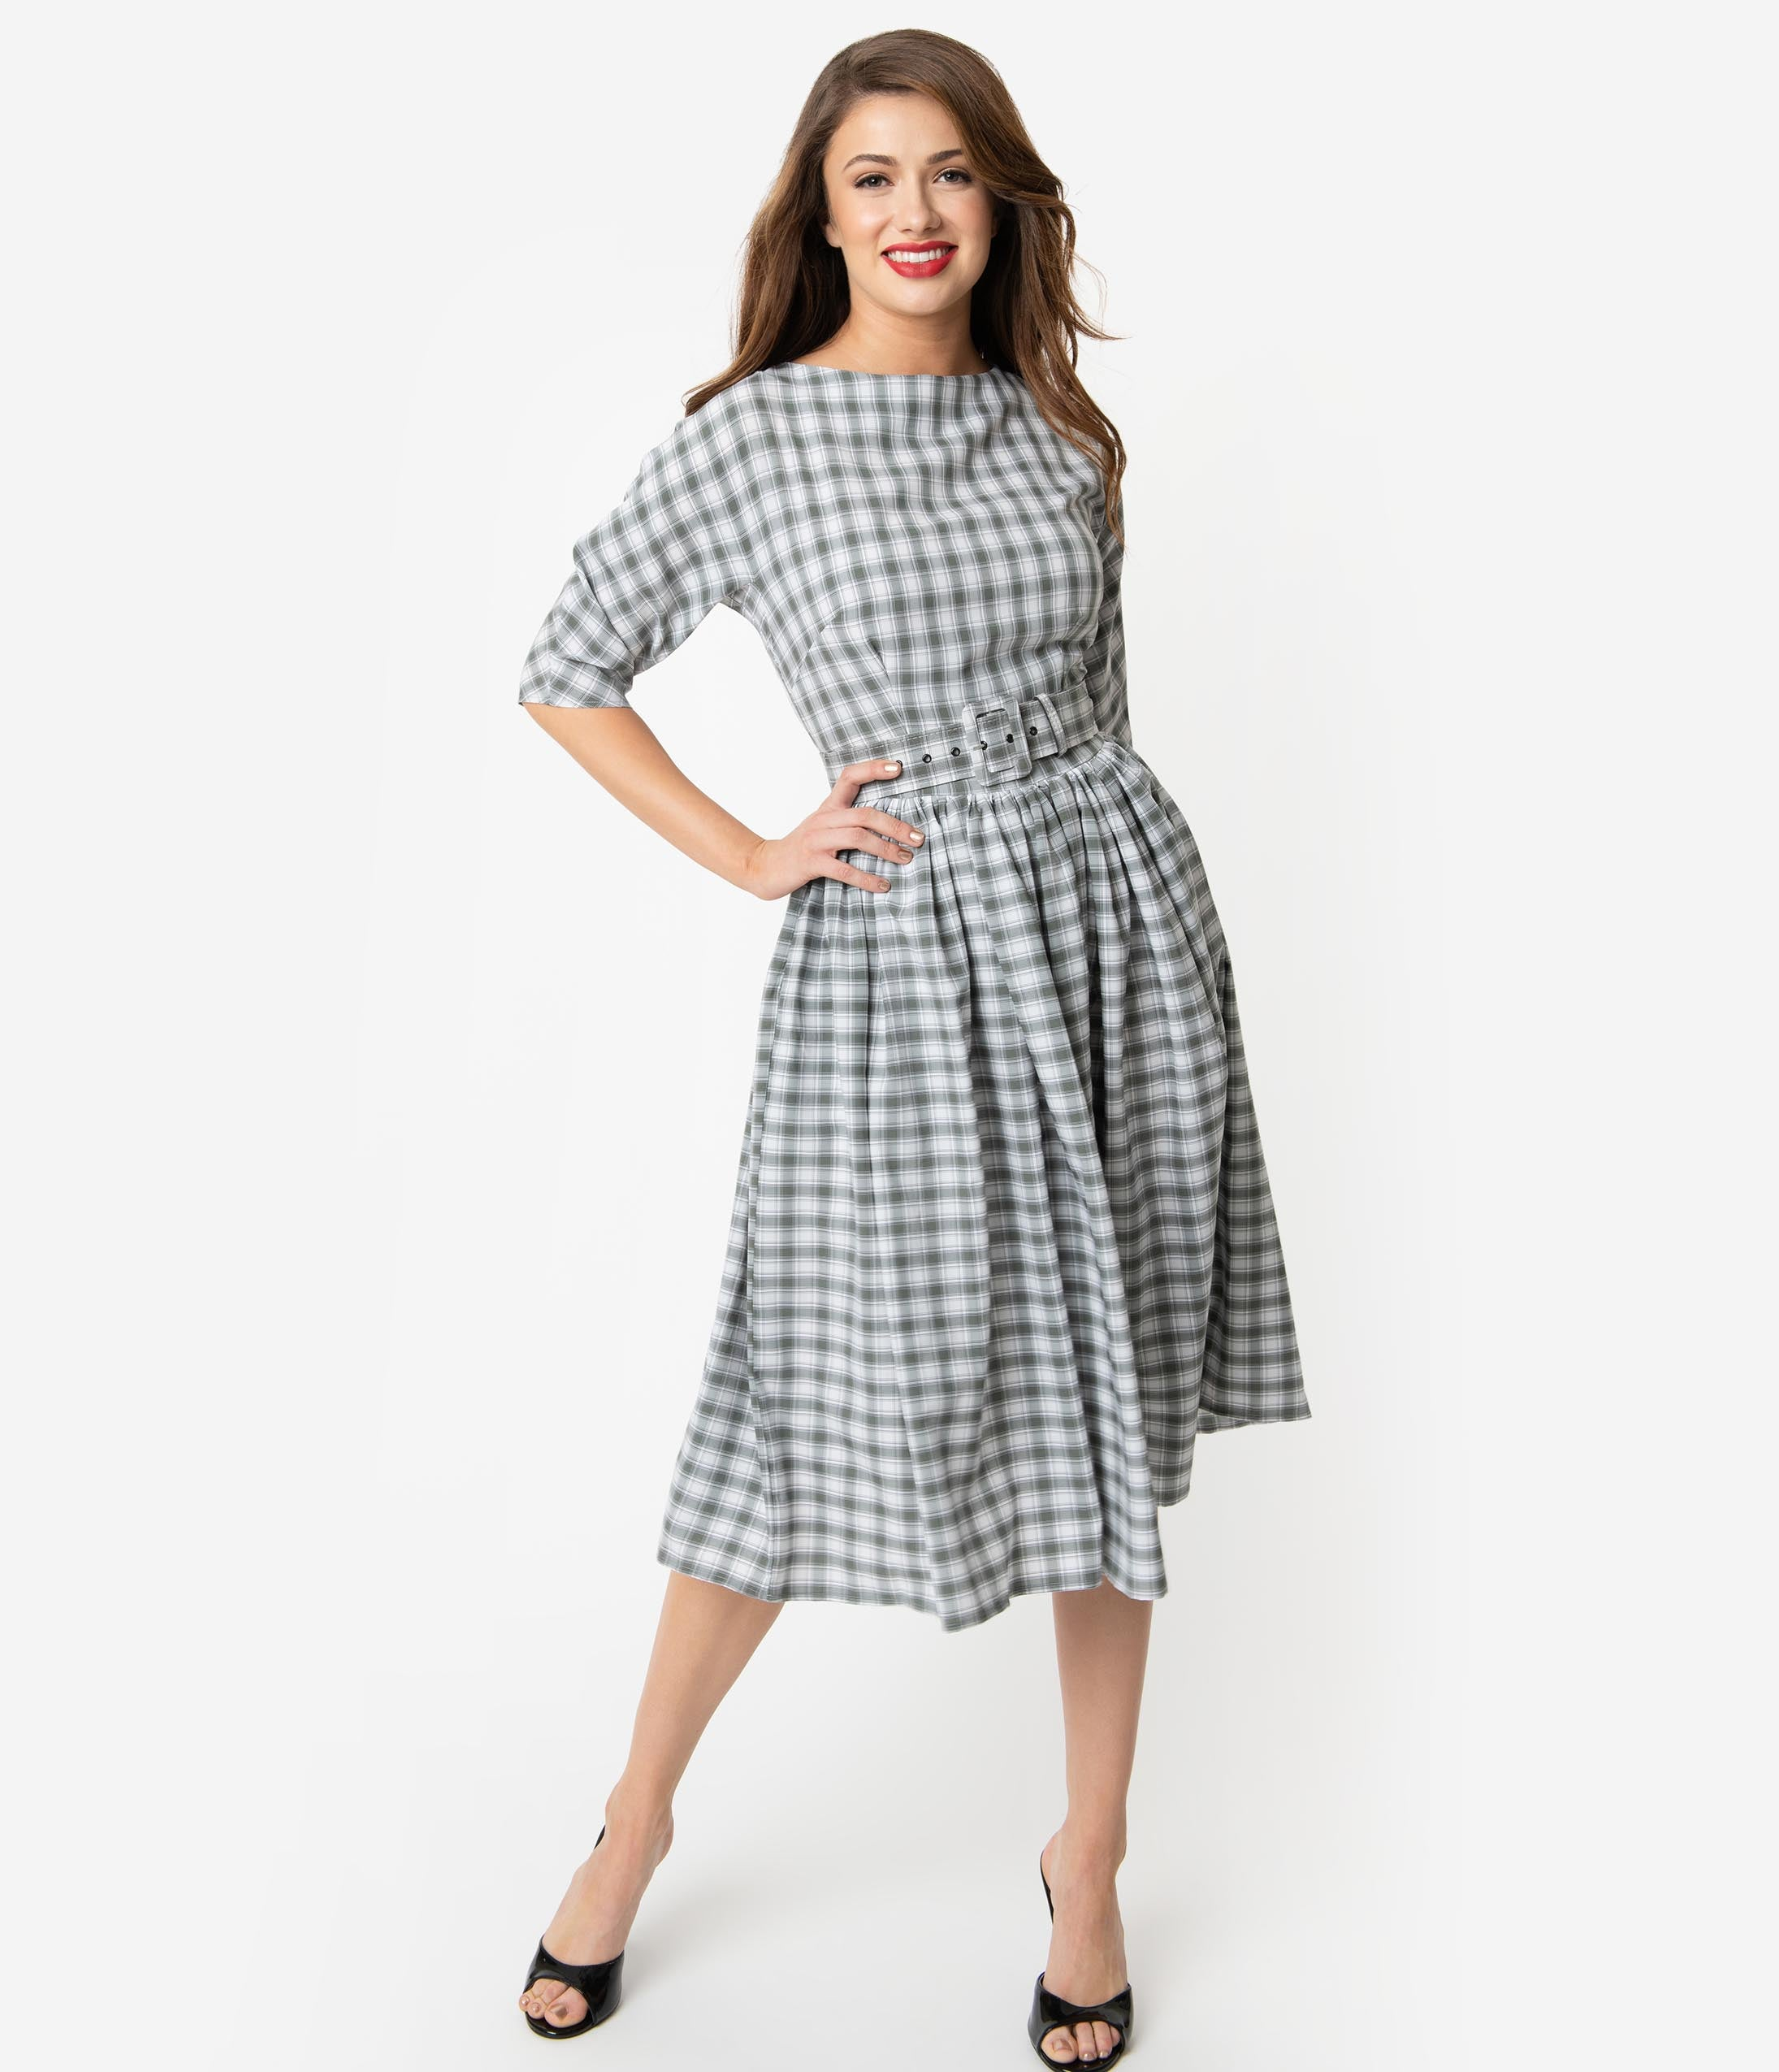 Vintage Tea Dresses, Floral Tea Dresses, Tea Length Dresses Unique Vintage 1940S Style Grey  White Plaid Sleeved Sally Swing Dress $61.00 AT vintagedancer.com